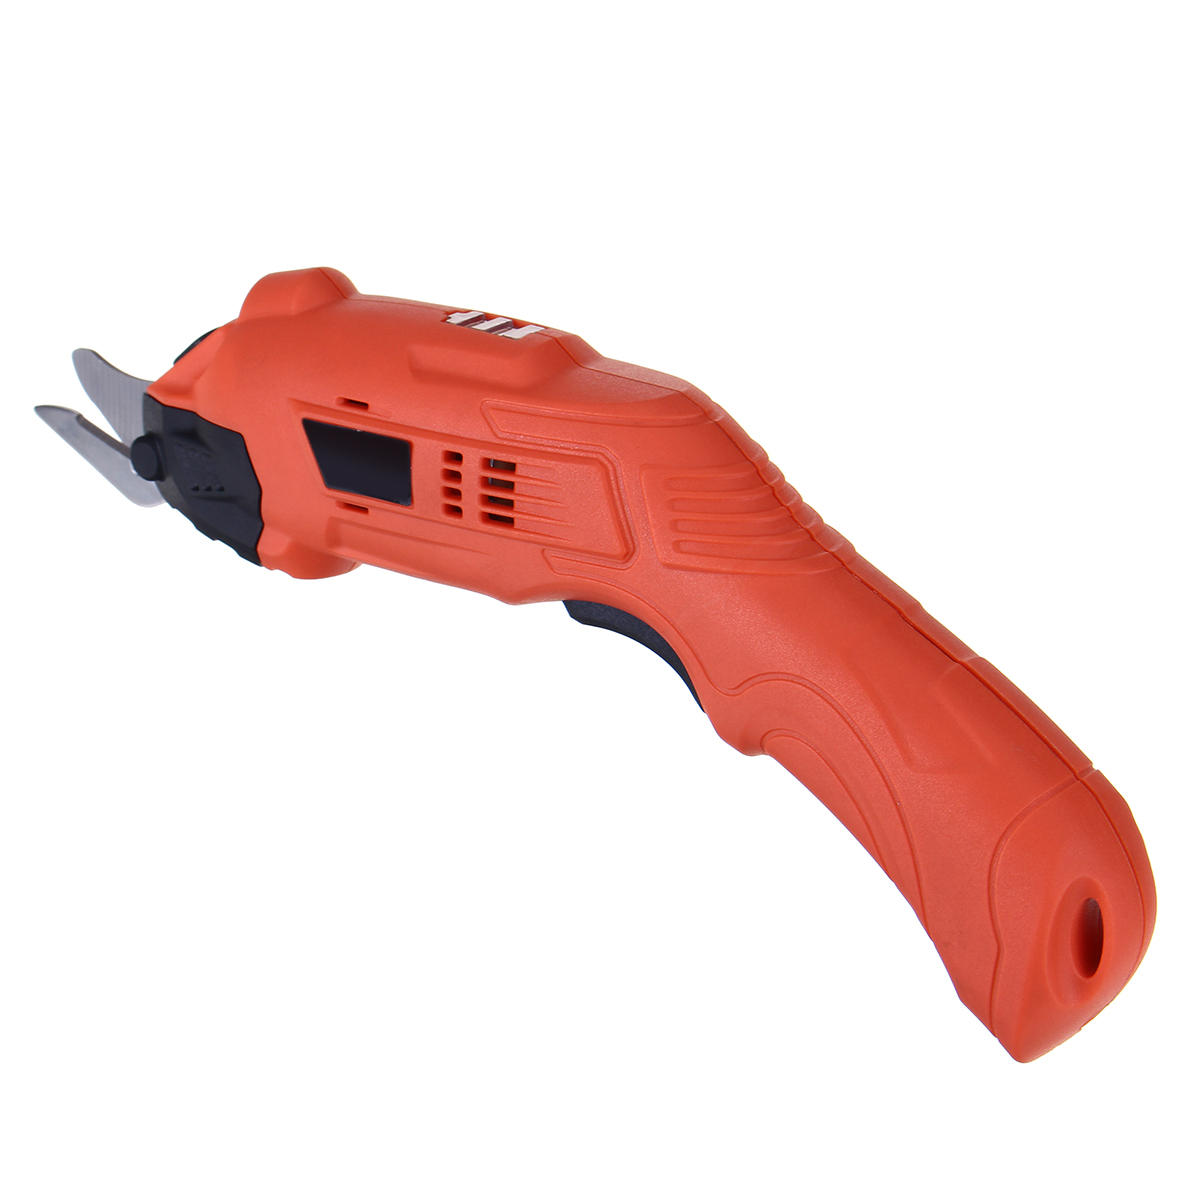 3/8'' 32N.m 12V Cordless Electric Wrench Right Angle Ratchet Wrench Tool with 2 Battery - 3